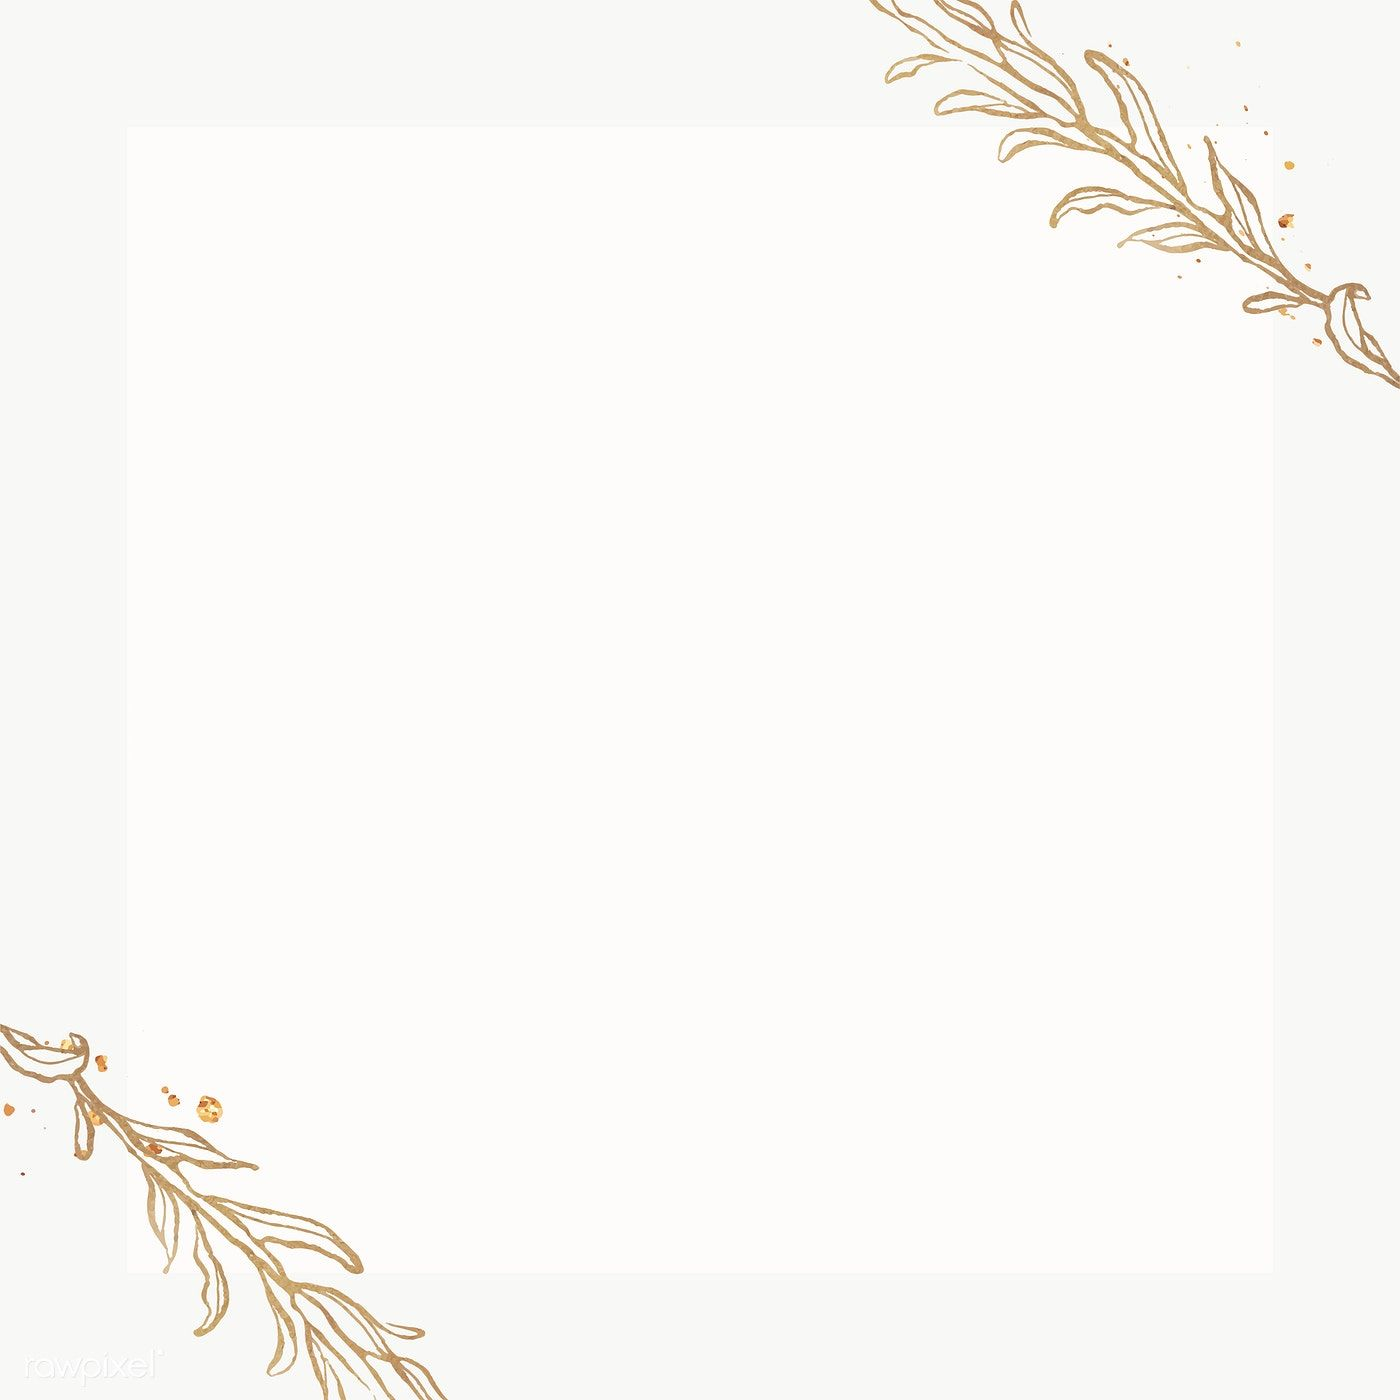 Download Premium Png Of Gold Leaves Frame On Marble Background 2019768 In 2020 Marble Background Flower Background Wallpaper Phone Wallpaper Images